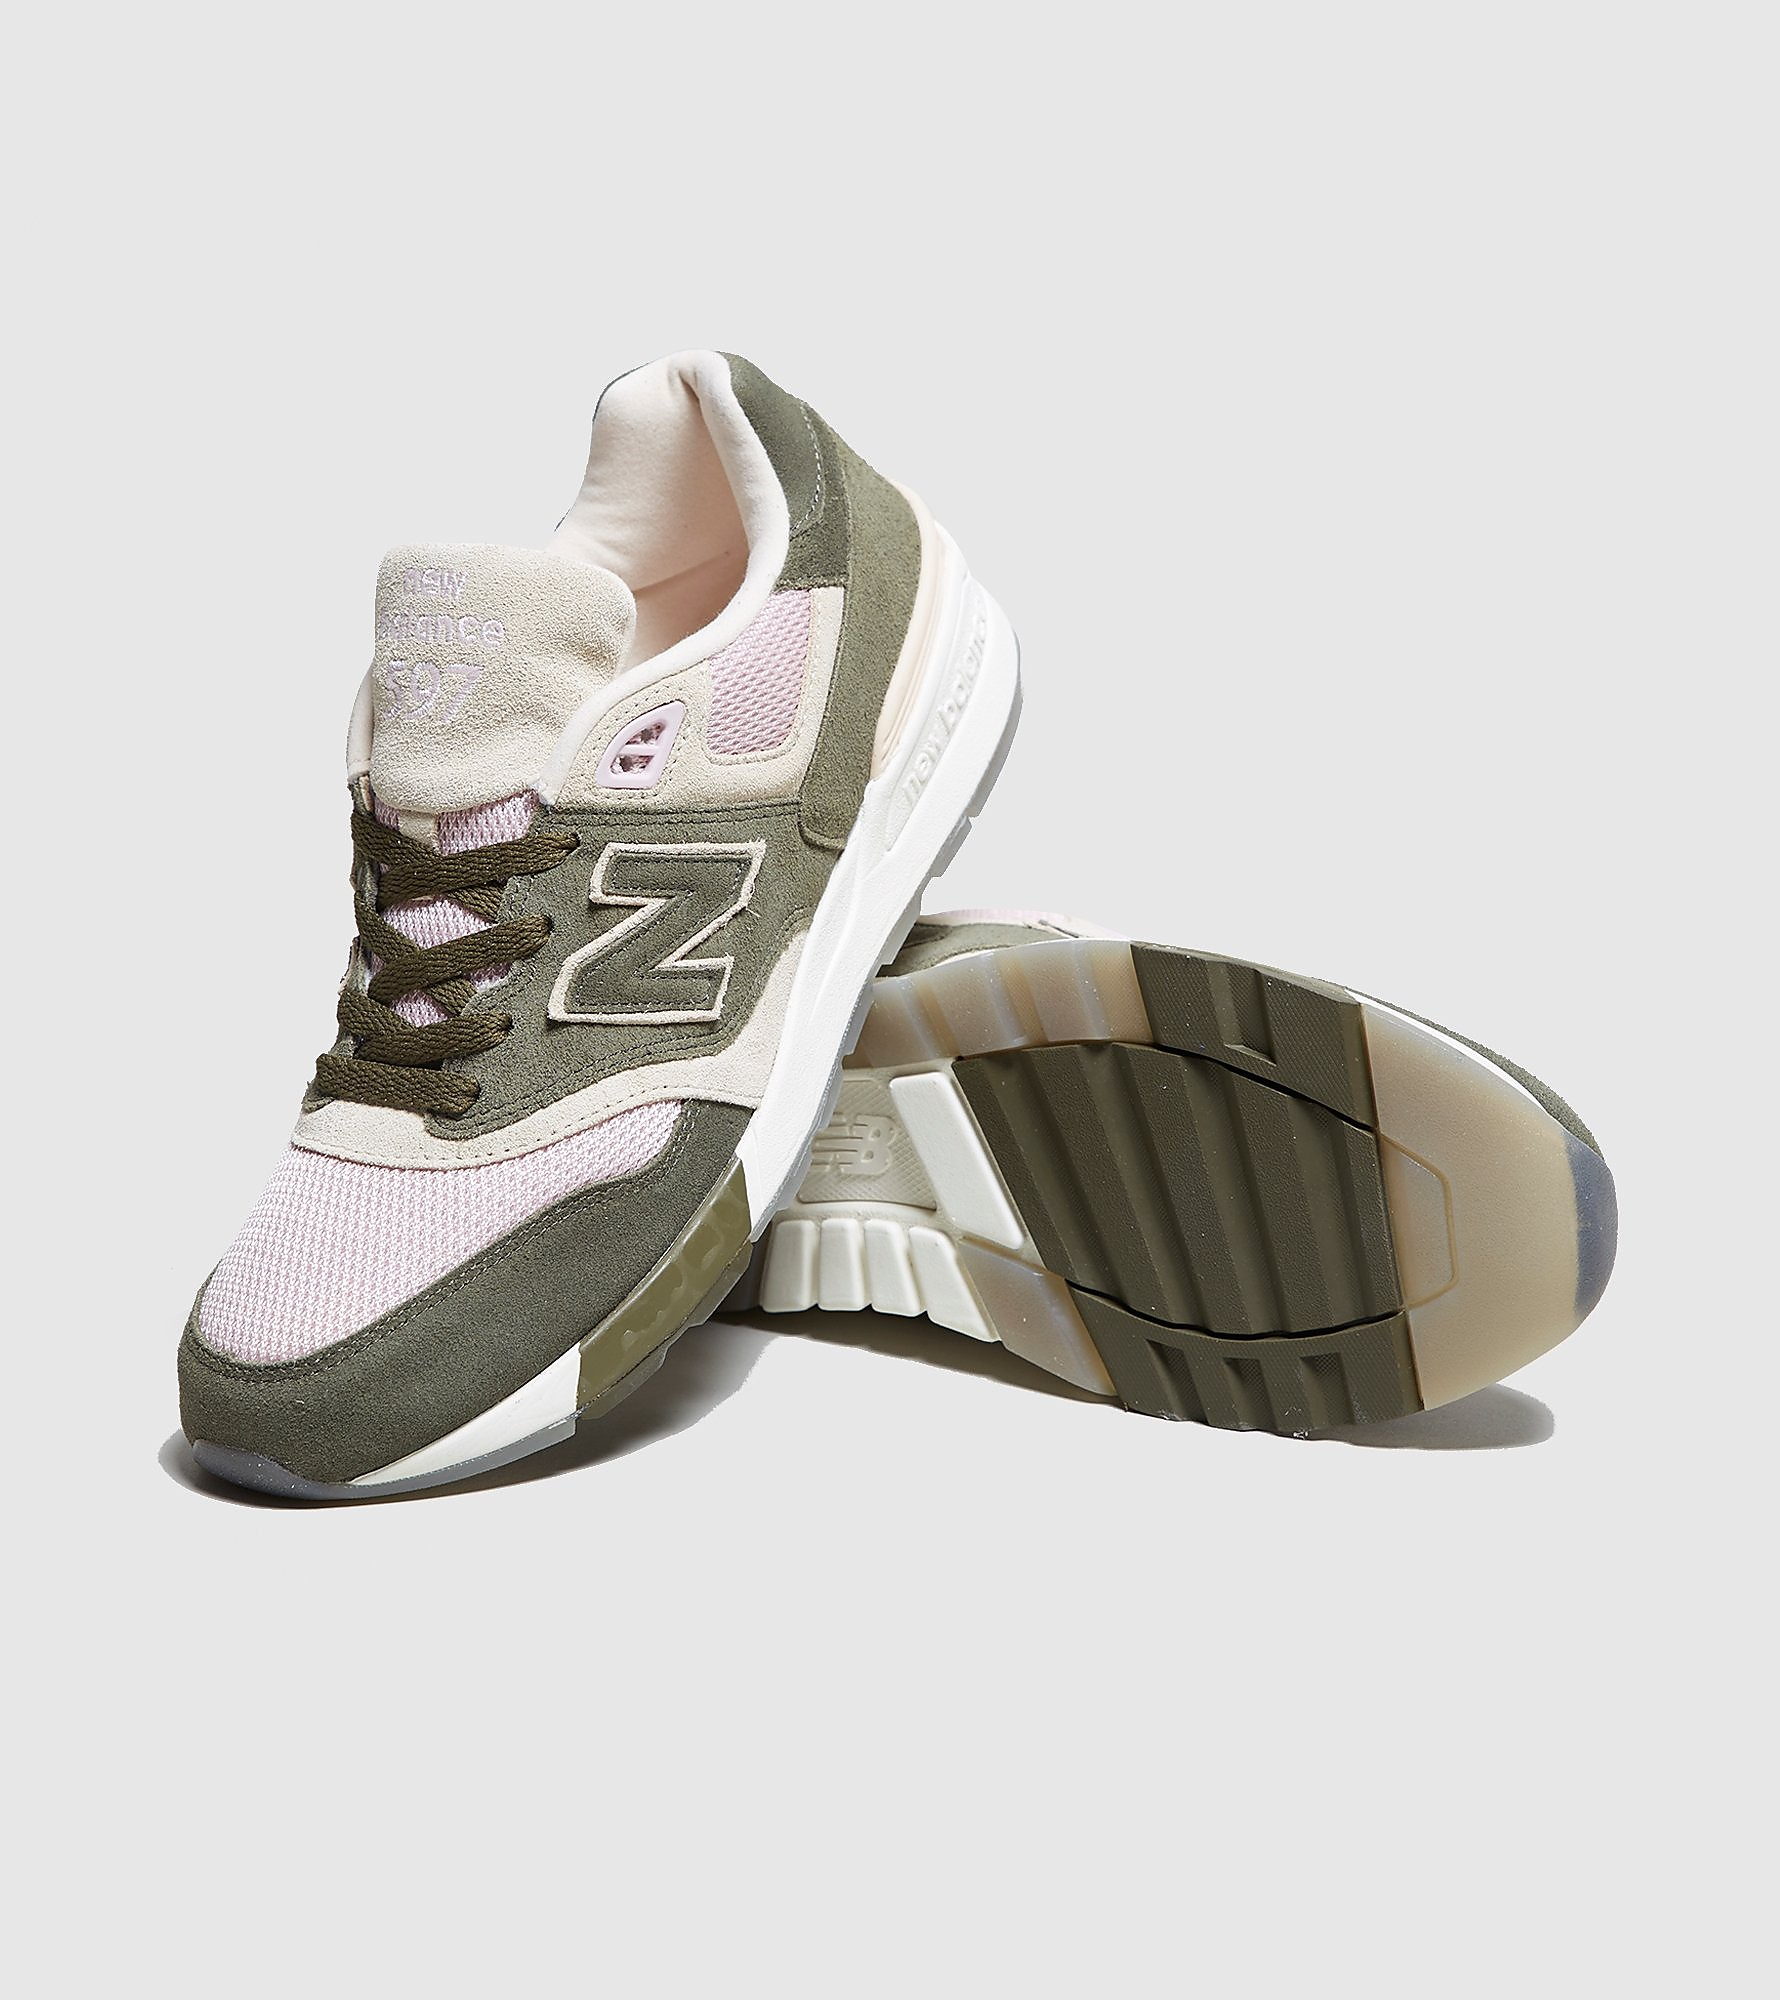 New Balance 597 size? Exclusive